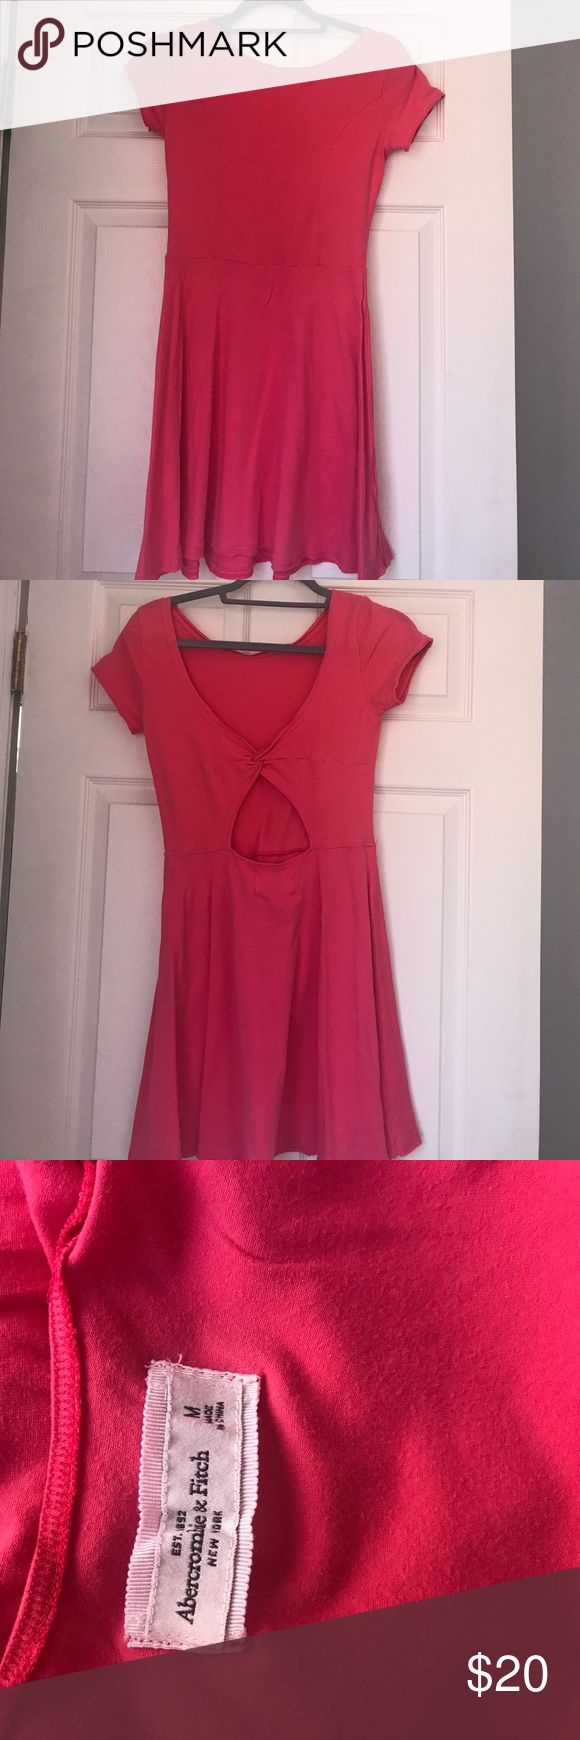 abercrombie hot pink dress abercrombie & fitch hot pink t shirt sit & flare dress Abercrombie & Fitch Dresses Strapless